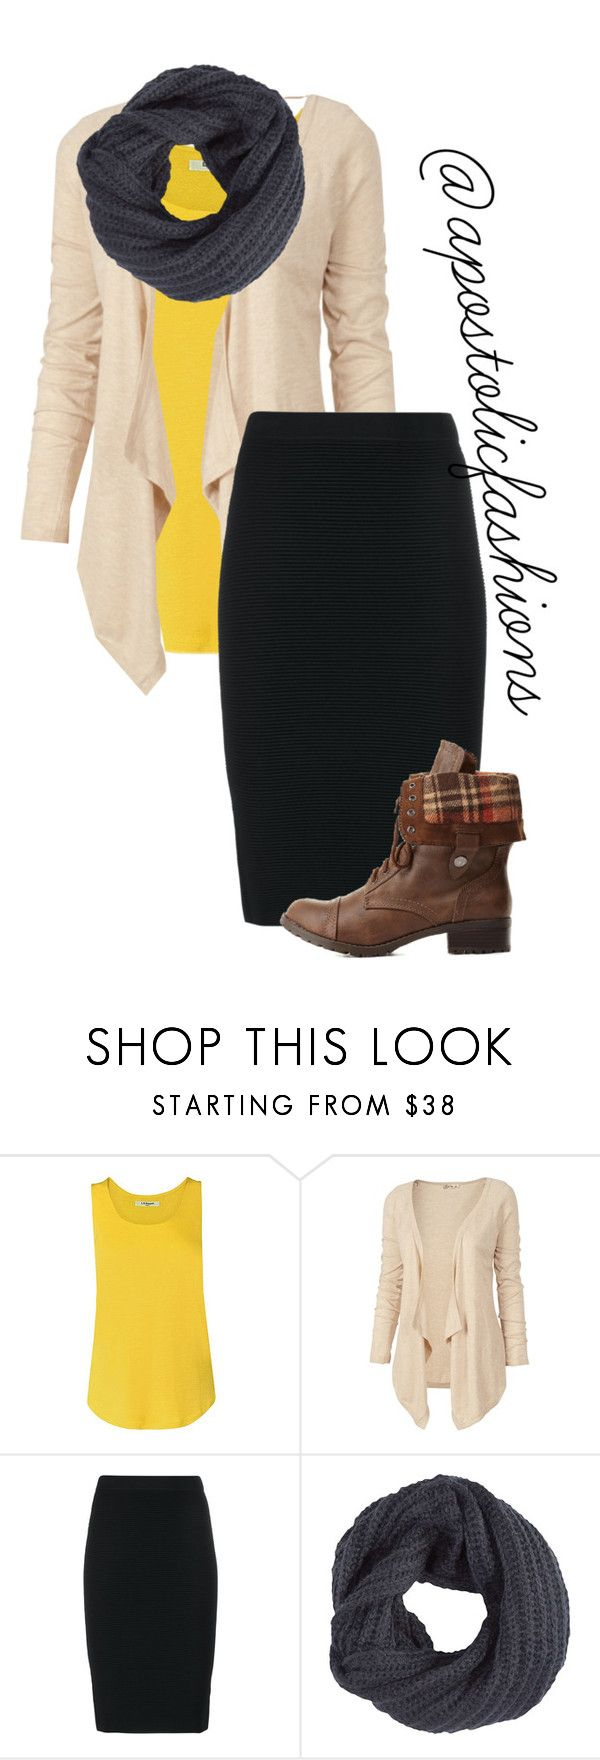 """Apostolic Fashions #1329"" by apostolicfashions ❤ liked on Polyvore featuring Fat Face, Jonathan Simkhai, Pistil, Charlotte Russe, modestlykay and modestlywhit"